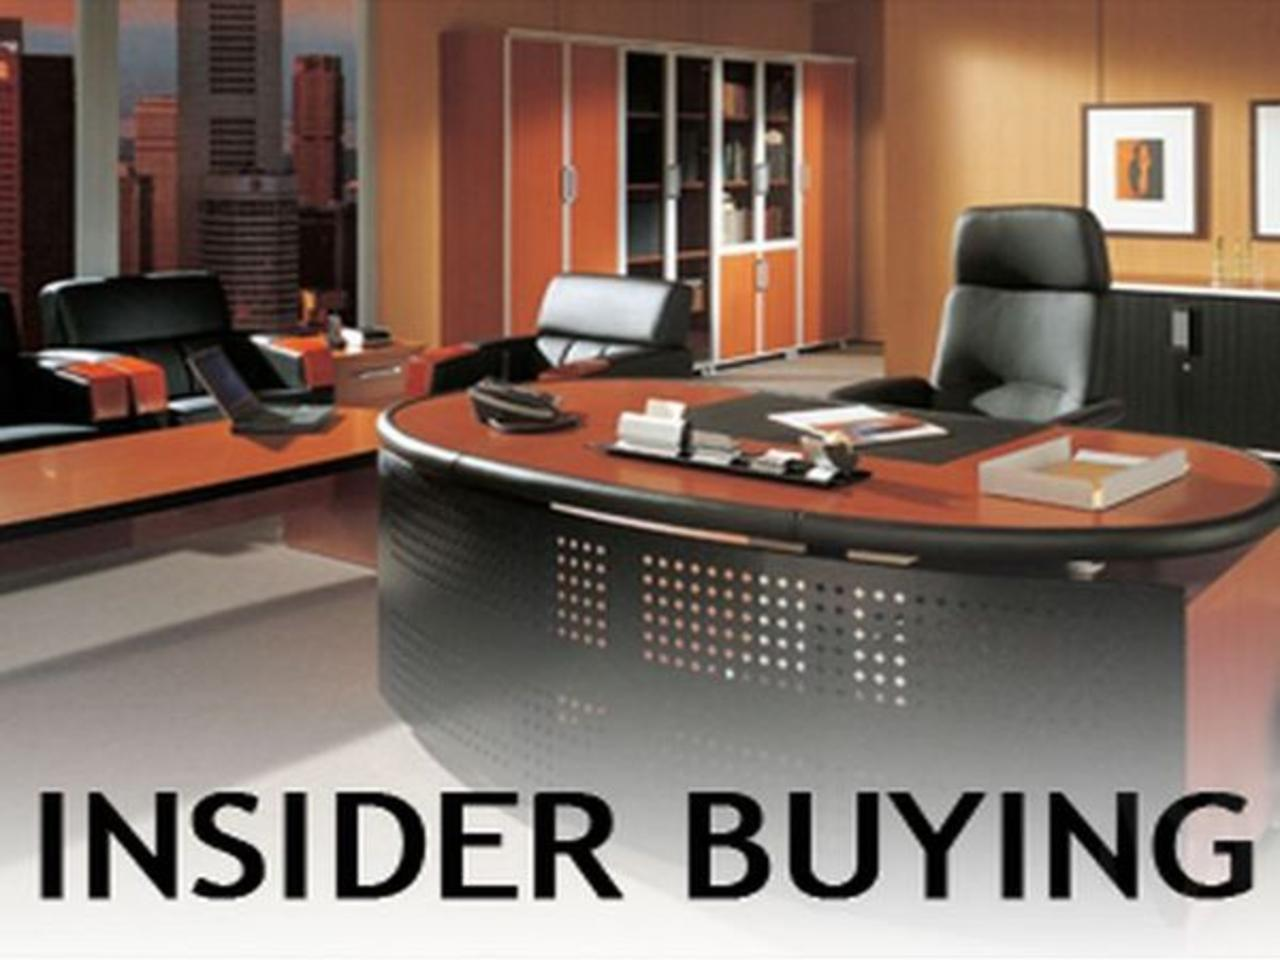 Monday 4/12 Insider Buying Report: CRSR, MACK